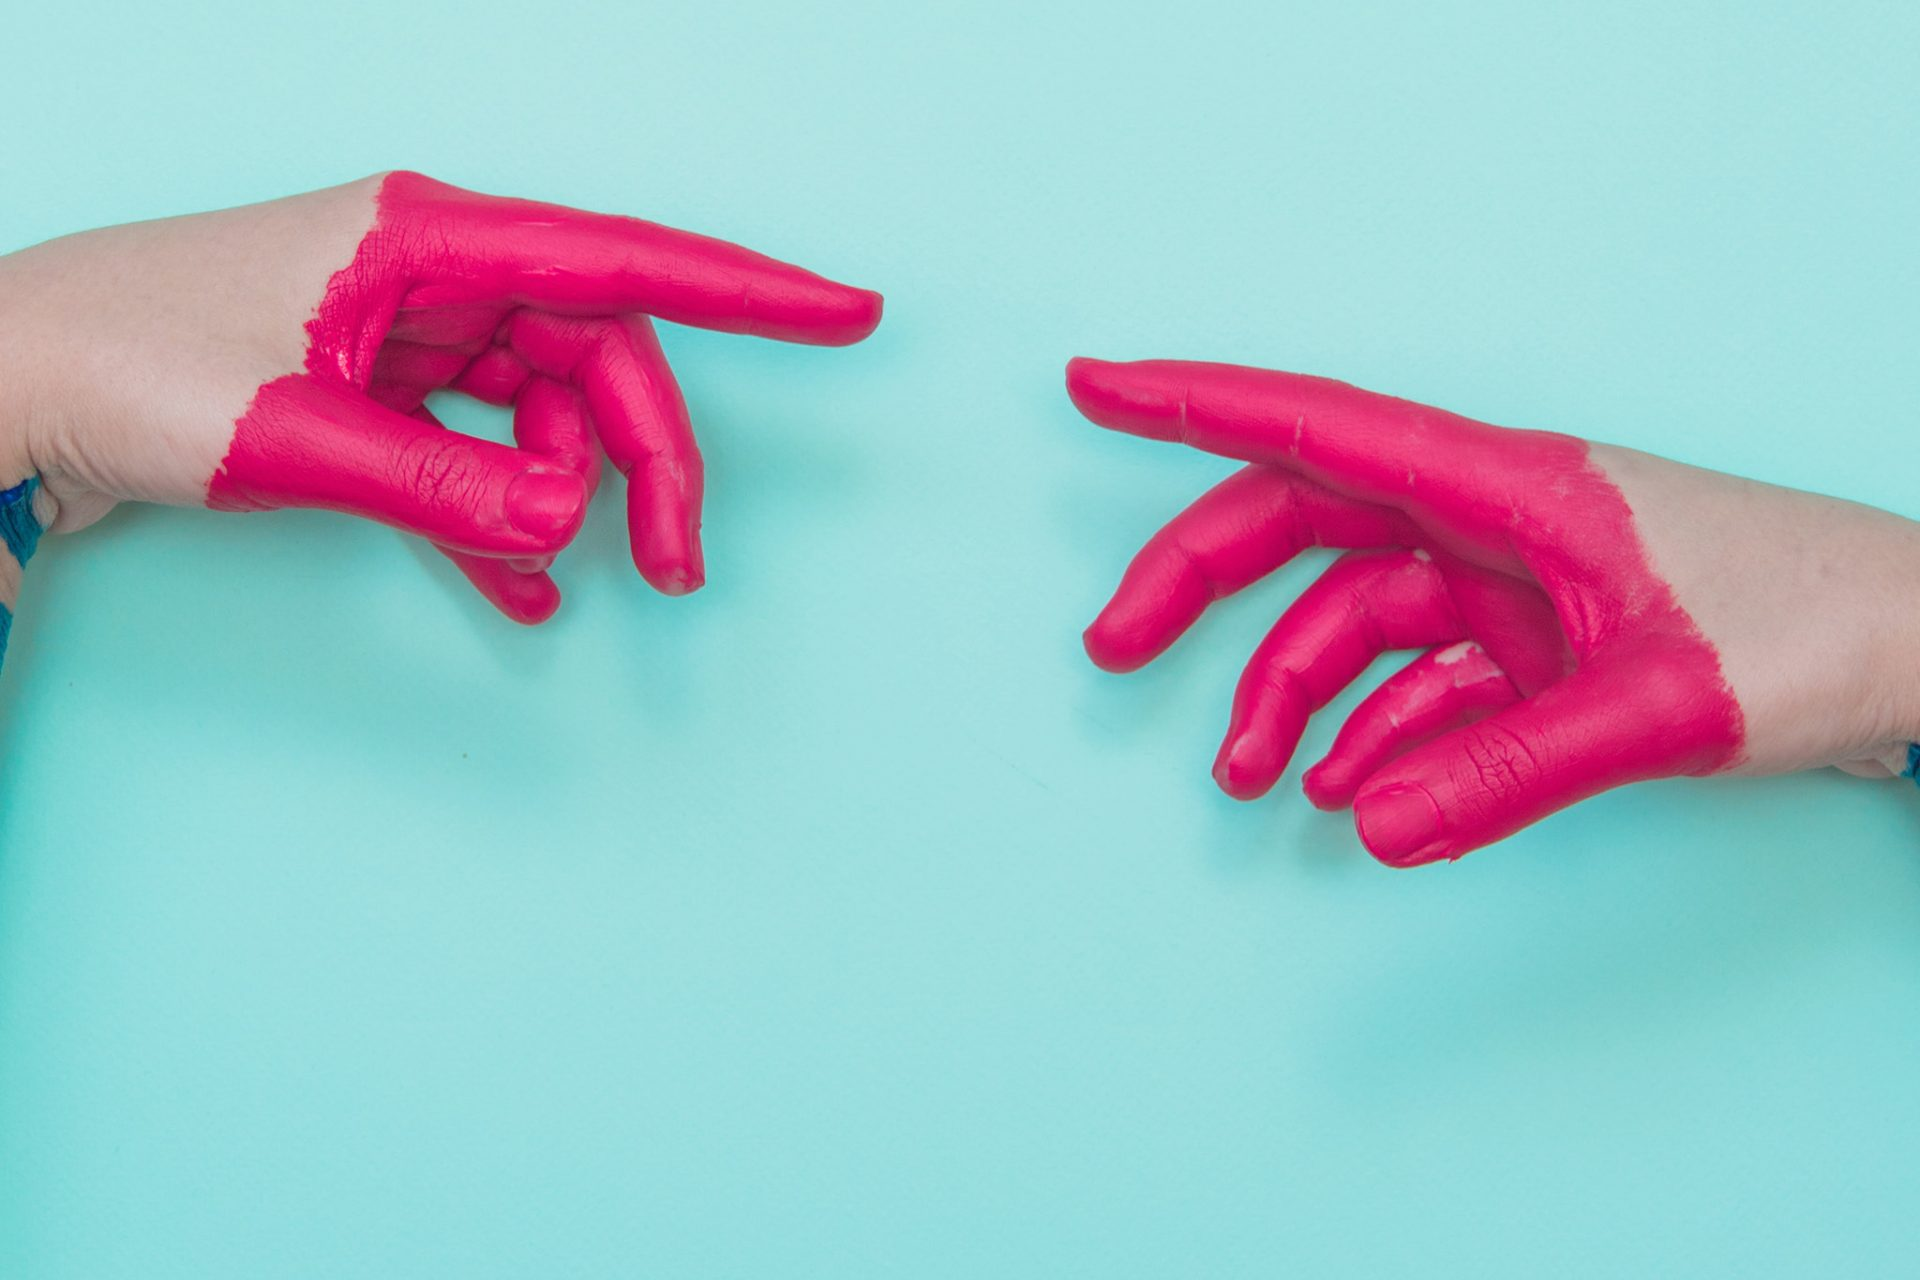 Two painted hands try to reach each other's fingers. Creative connecting conception